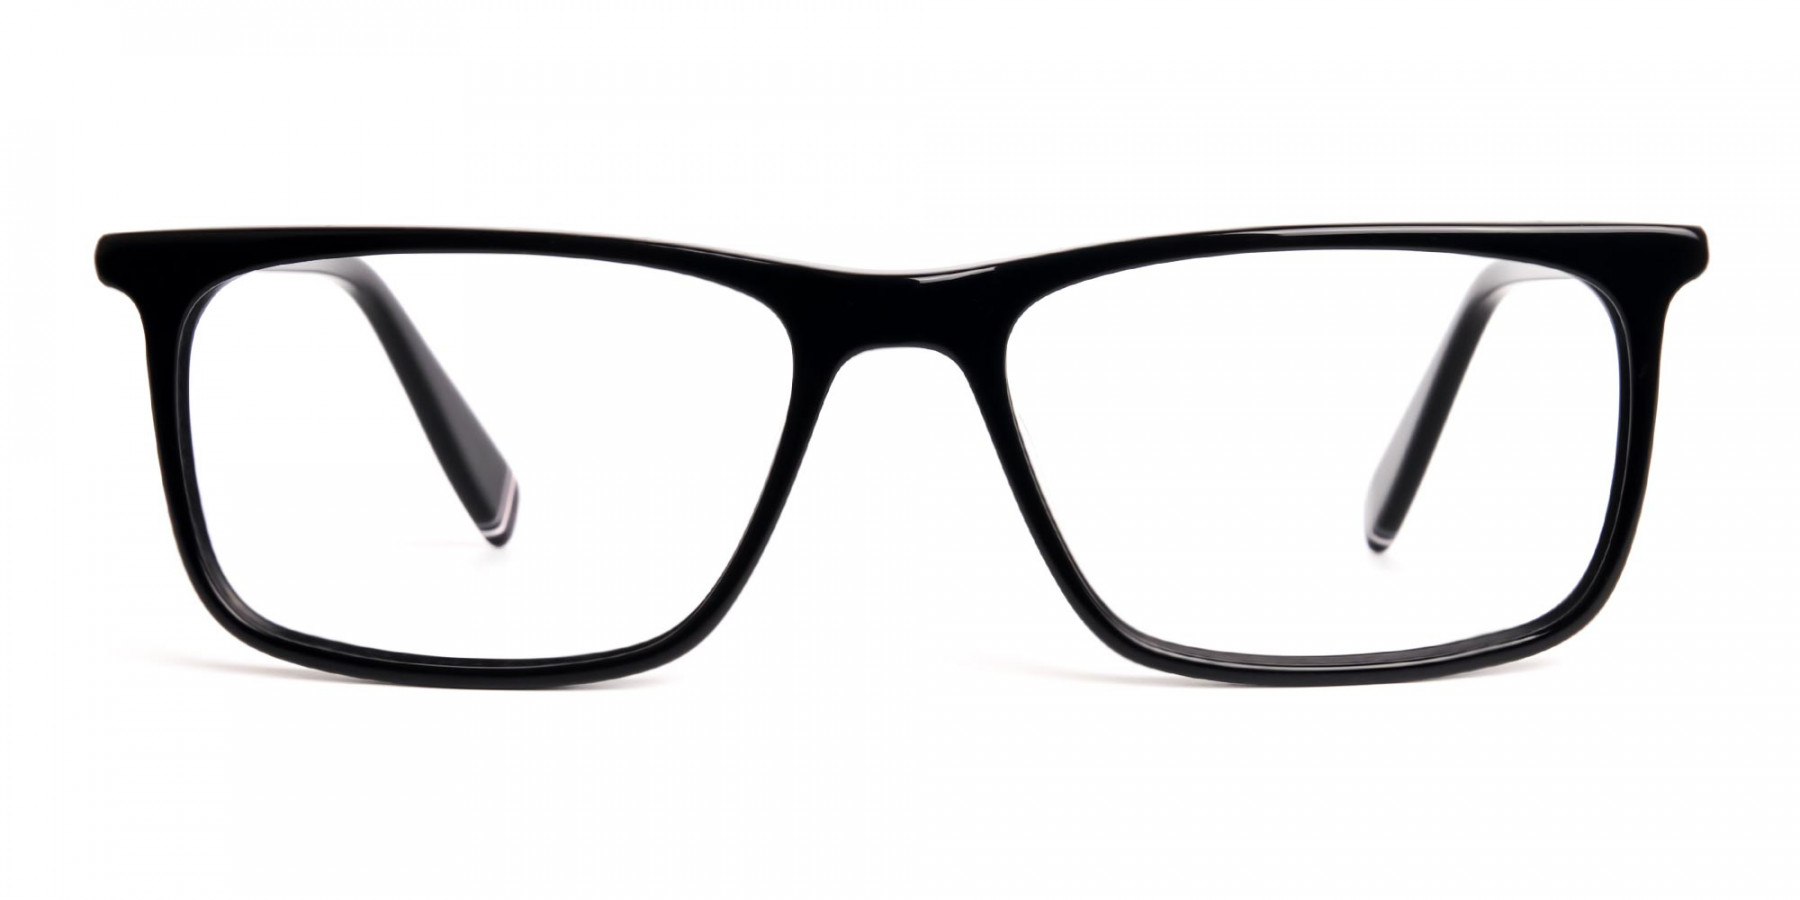 designer-black-glasses-in-rectangular-shape-frames-1